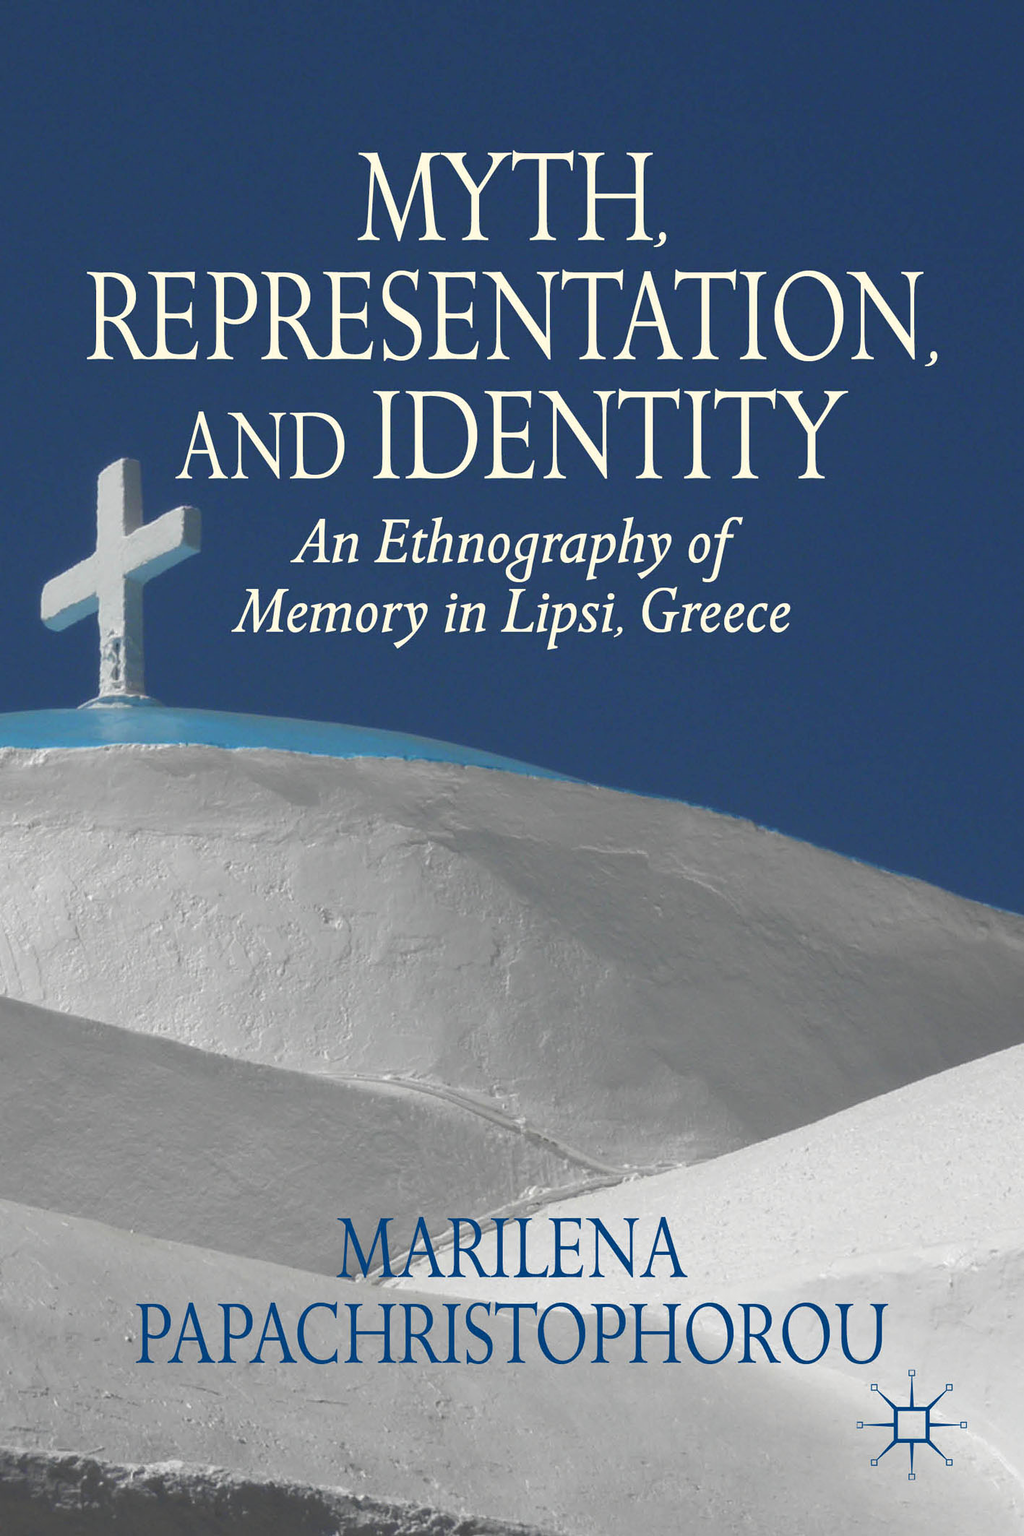 Myth,  Representation,  and Identity An Ethnography of Memory in Lipsi,  Greece